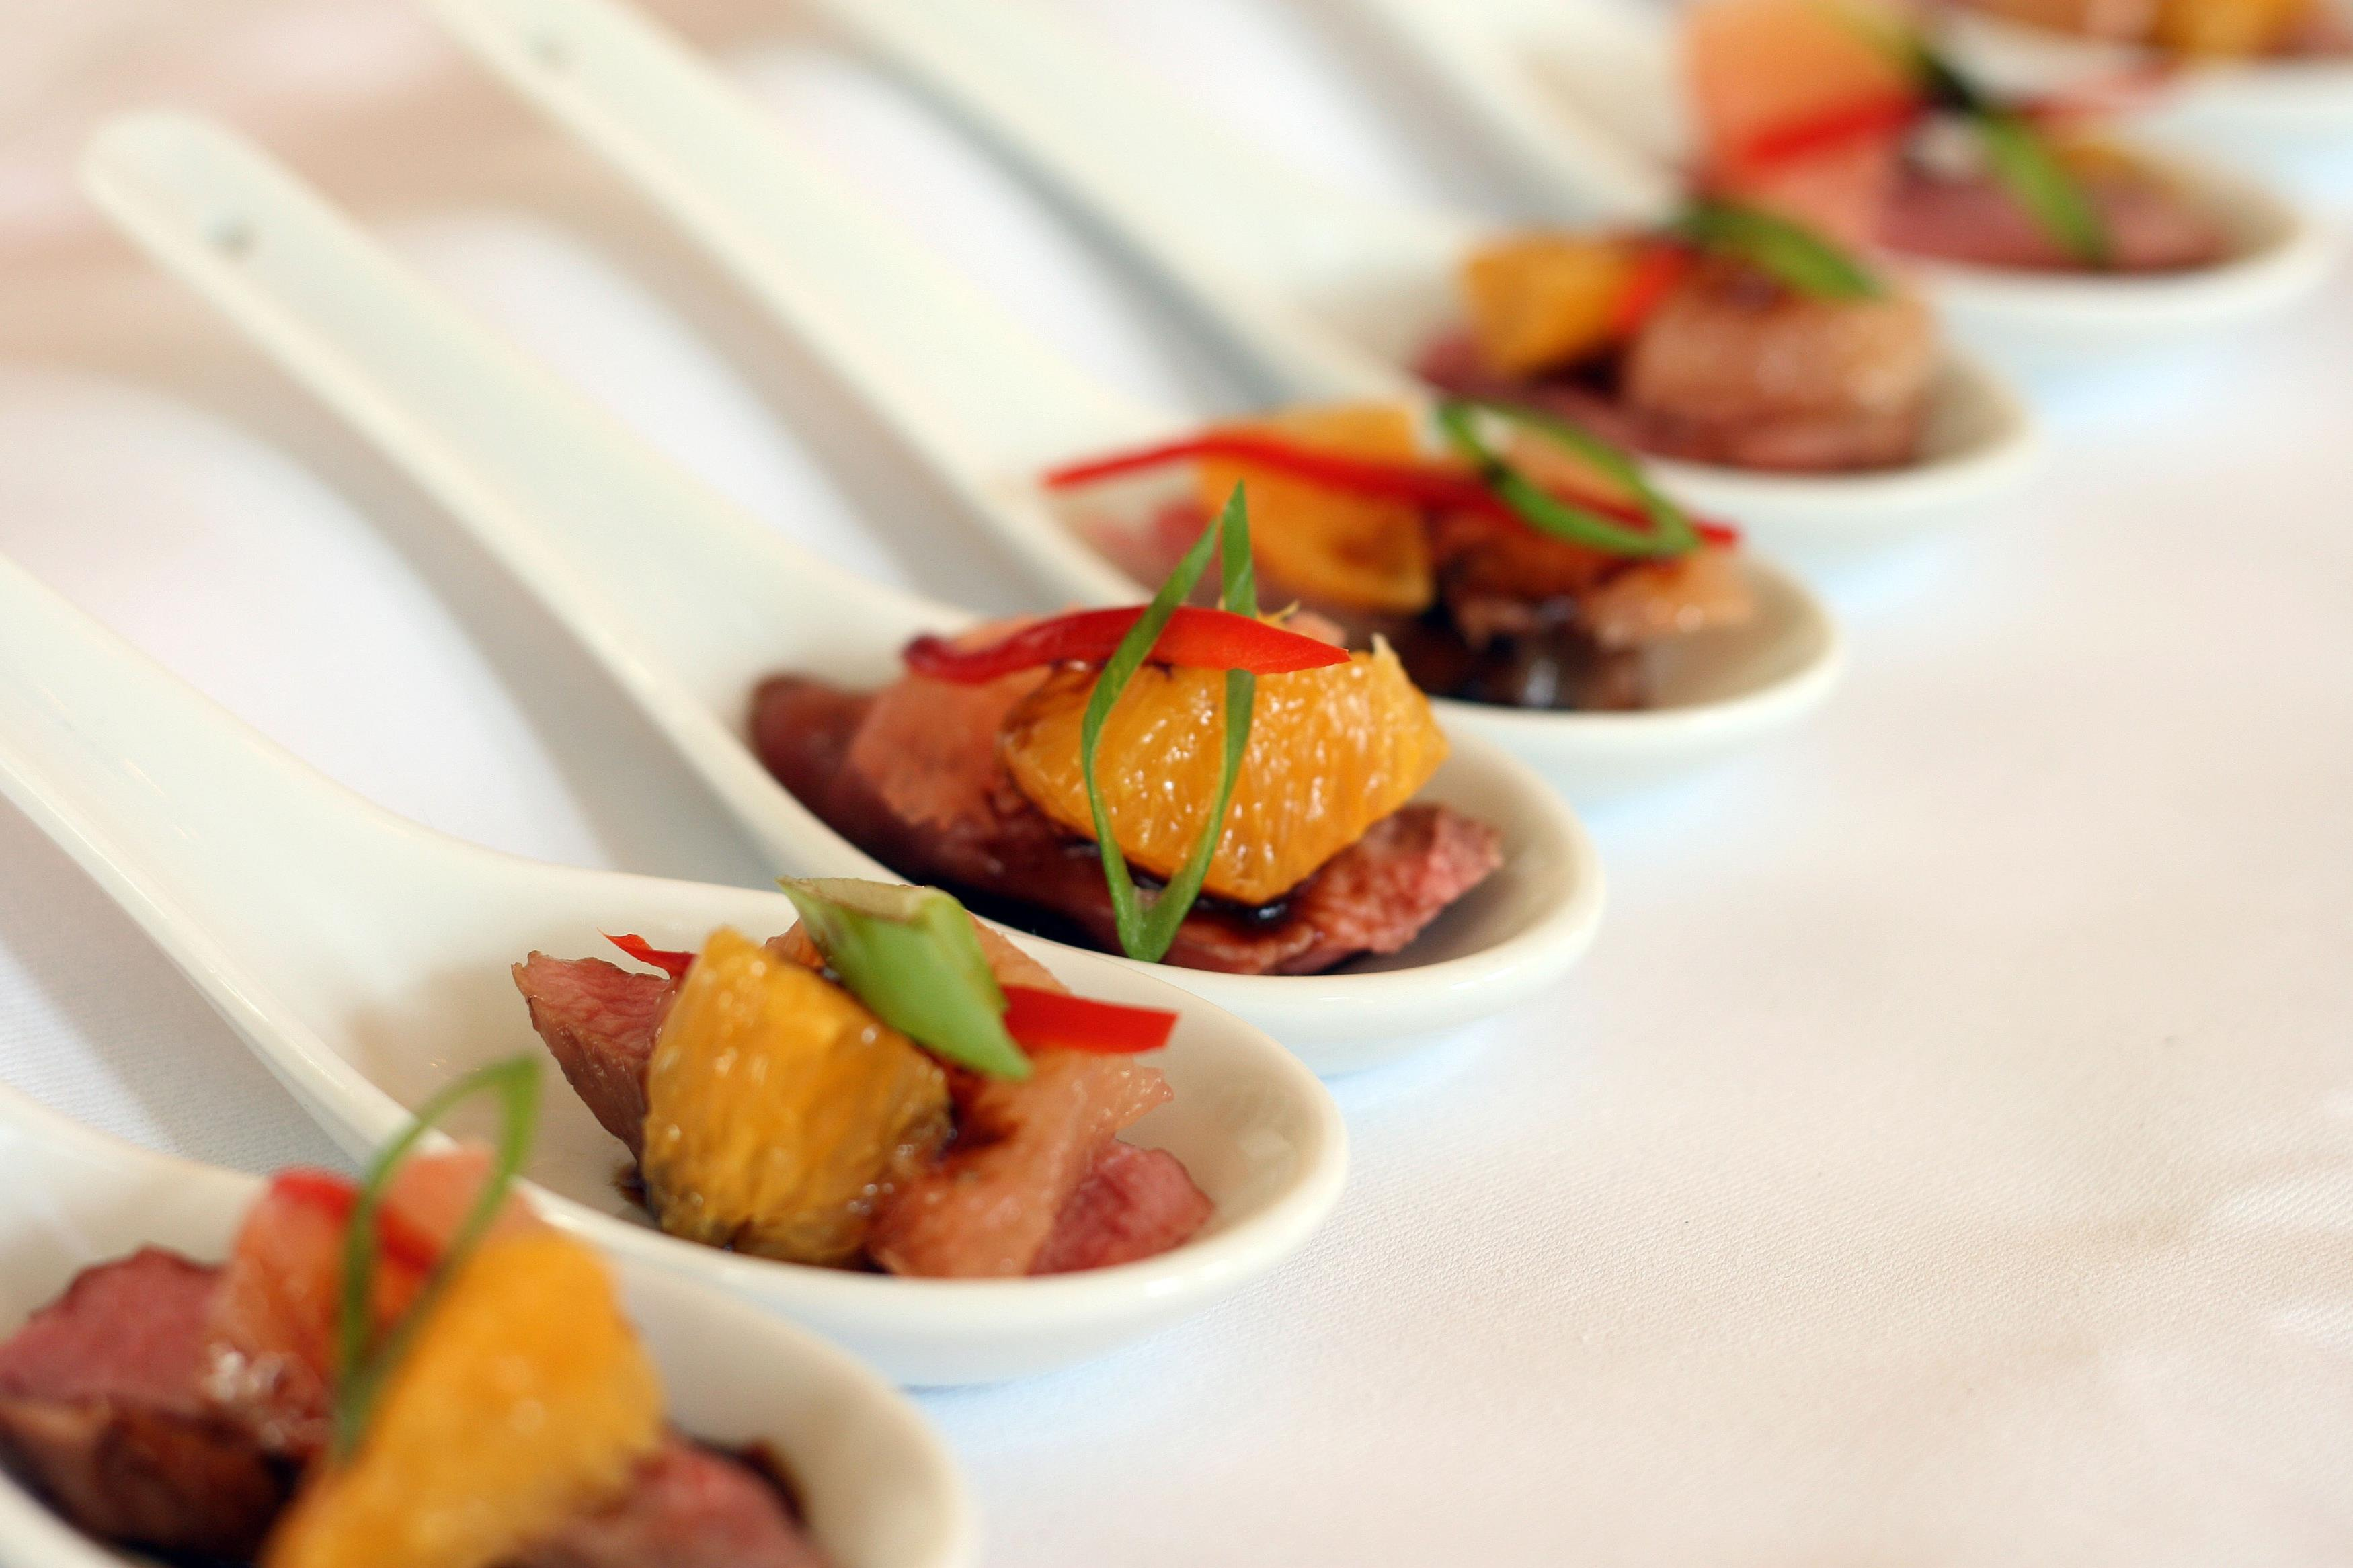 Simply food catering company in wellington wellington for Catering companies